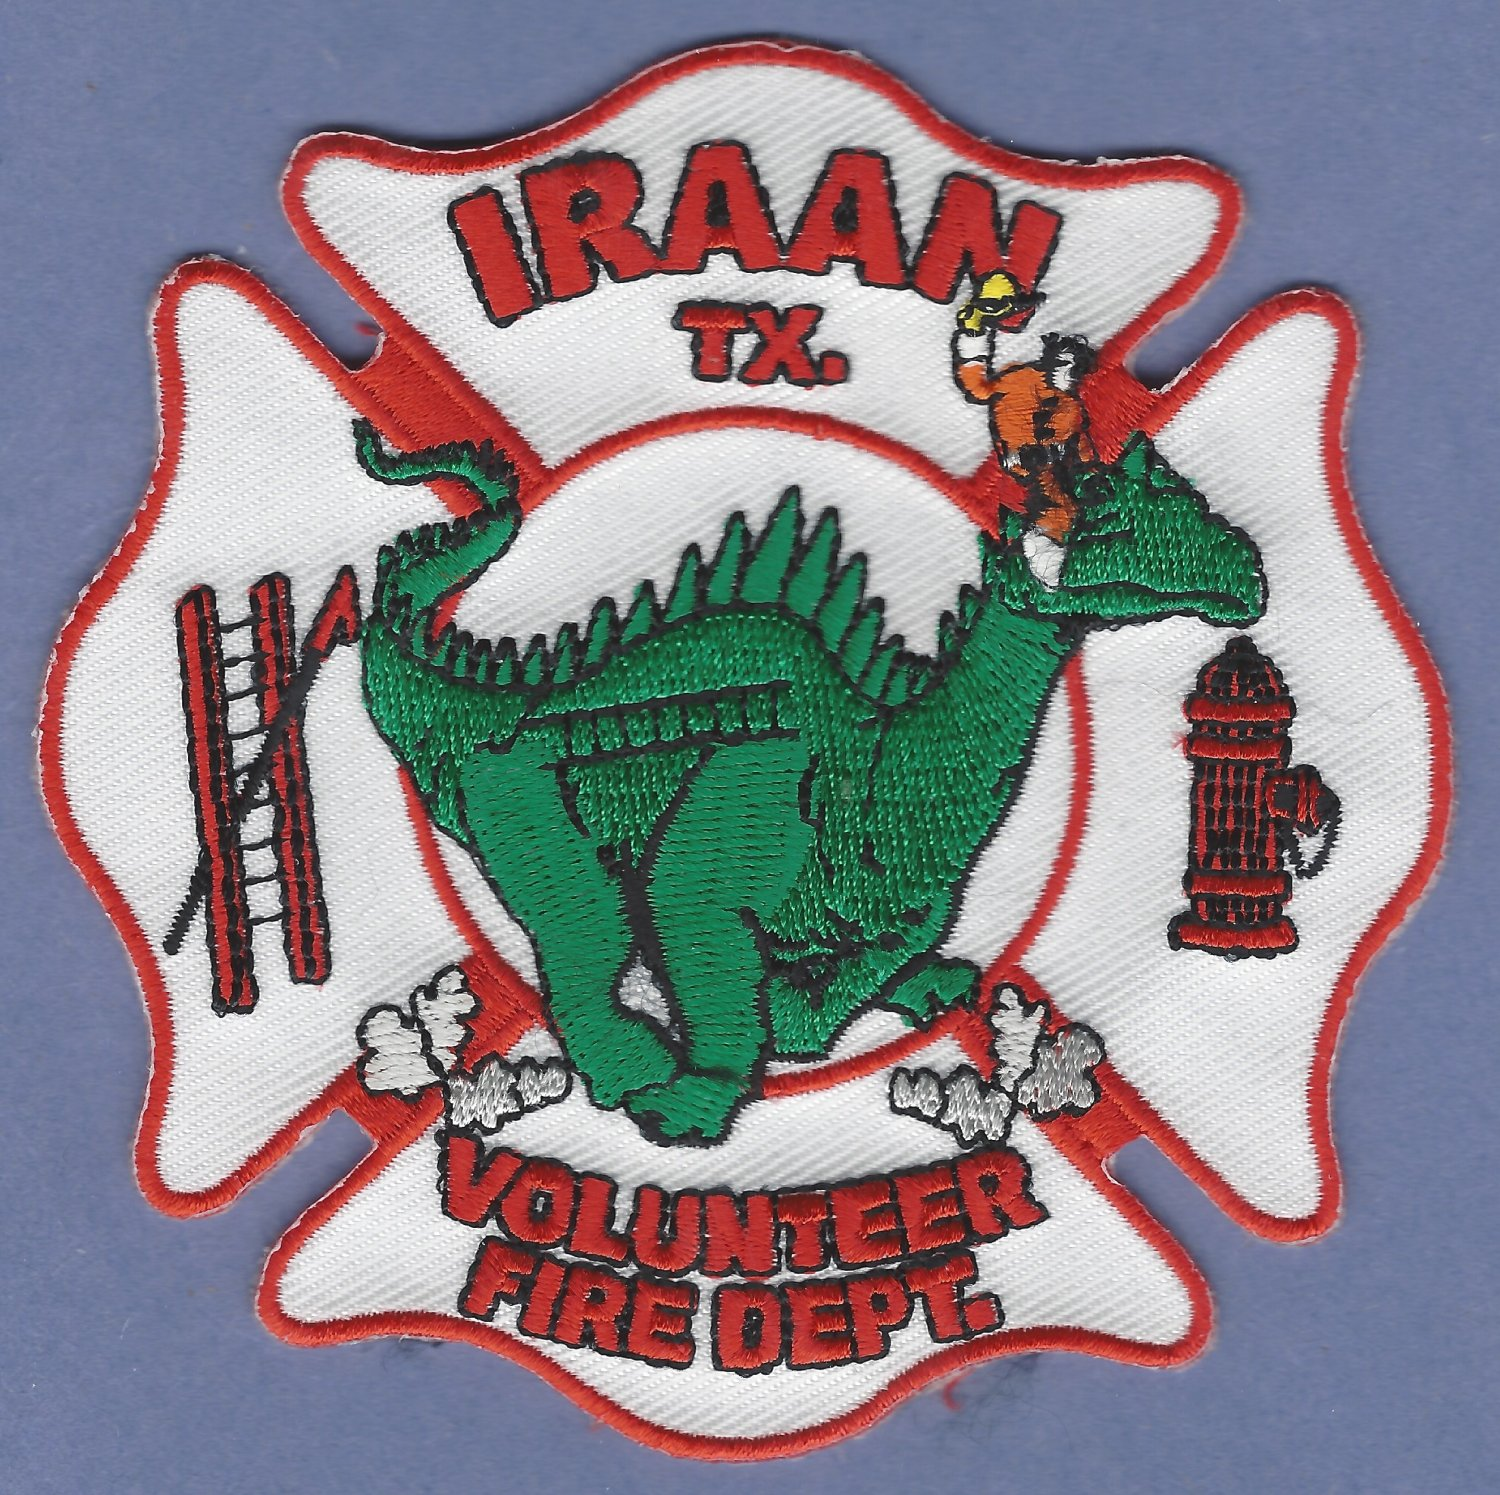 IRAAN TEXAS FIRE RESCUE PATCH